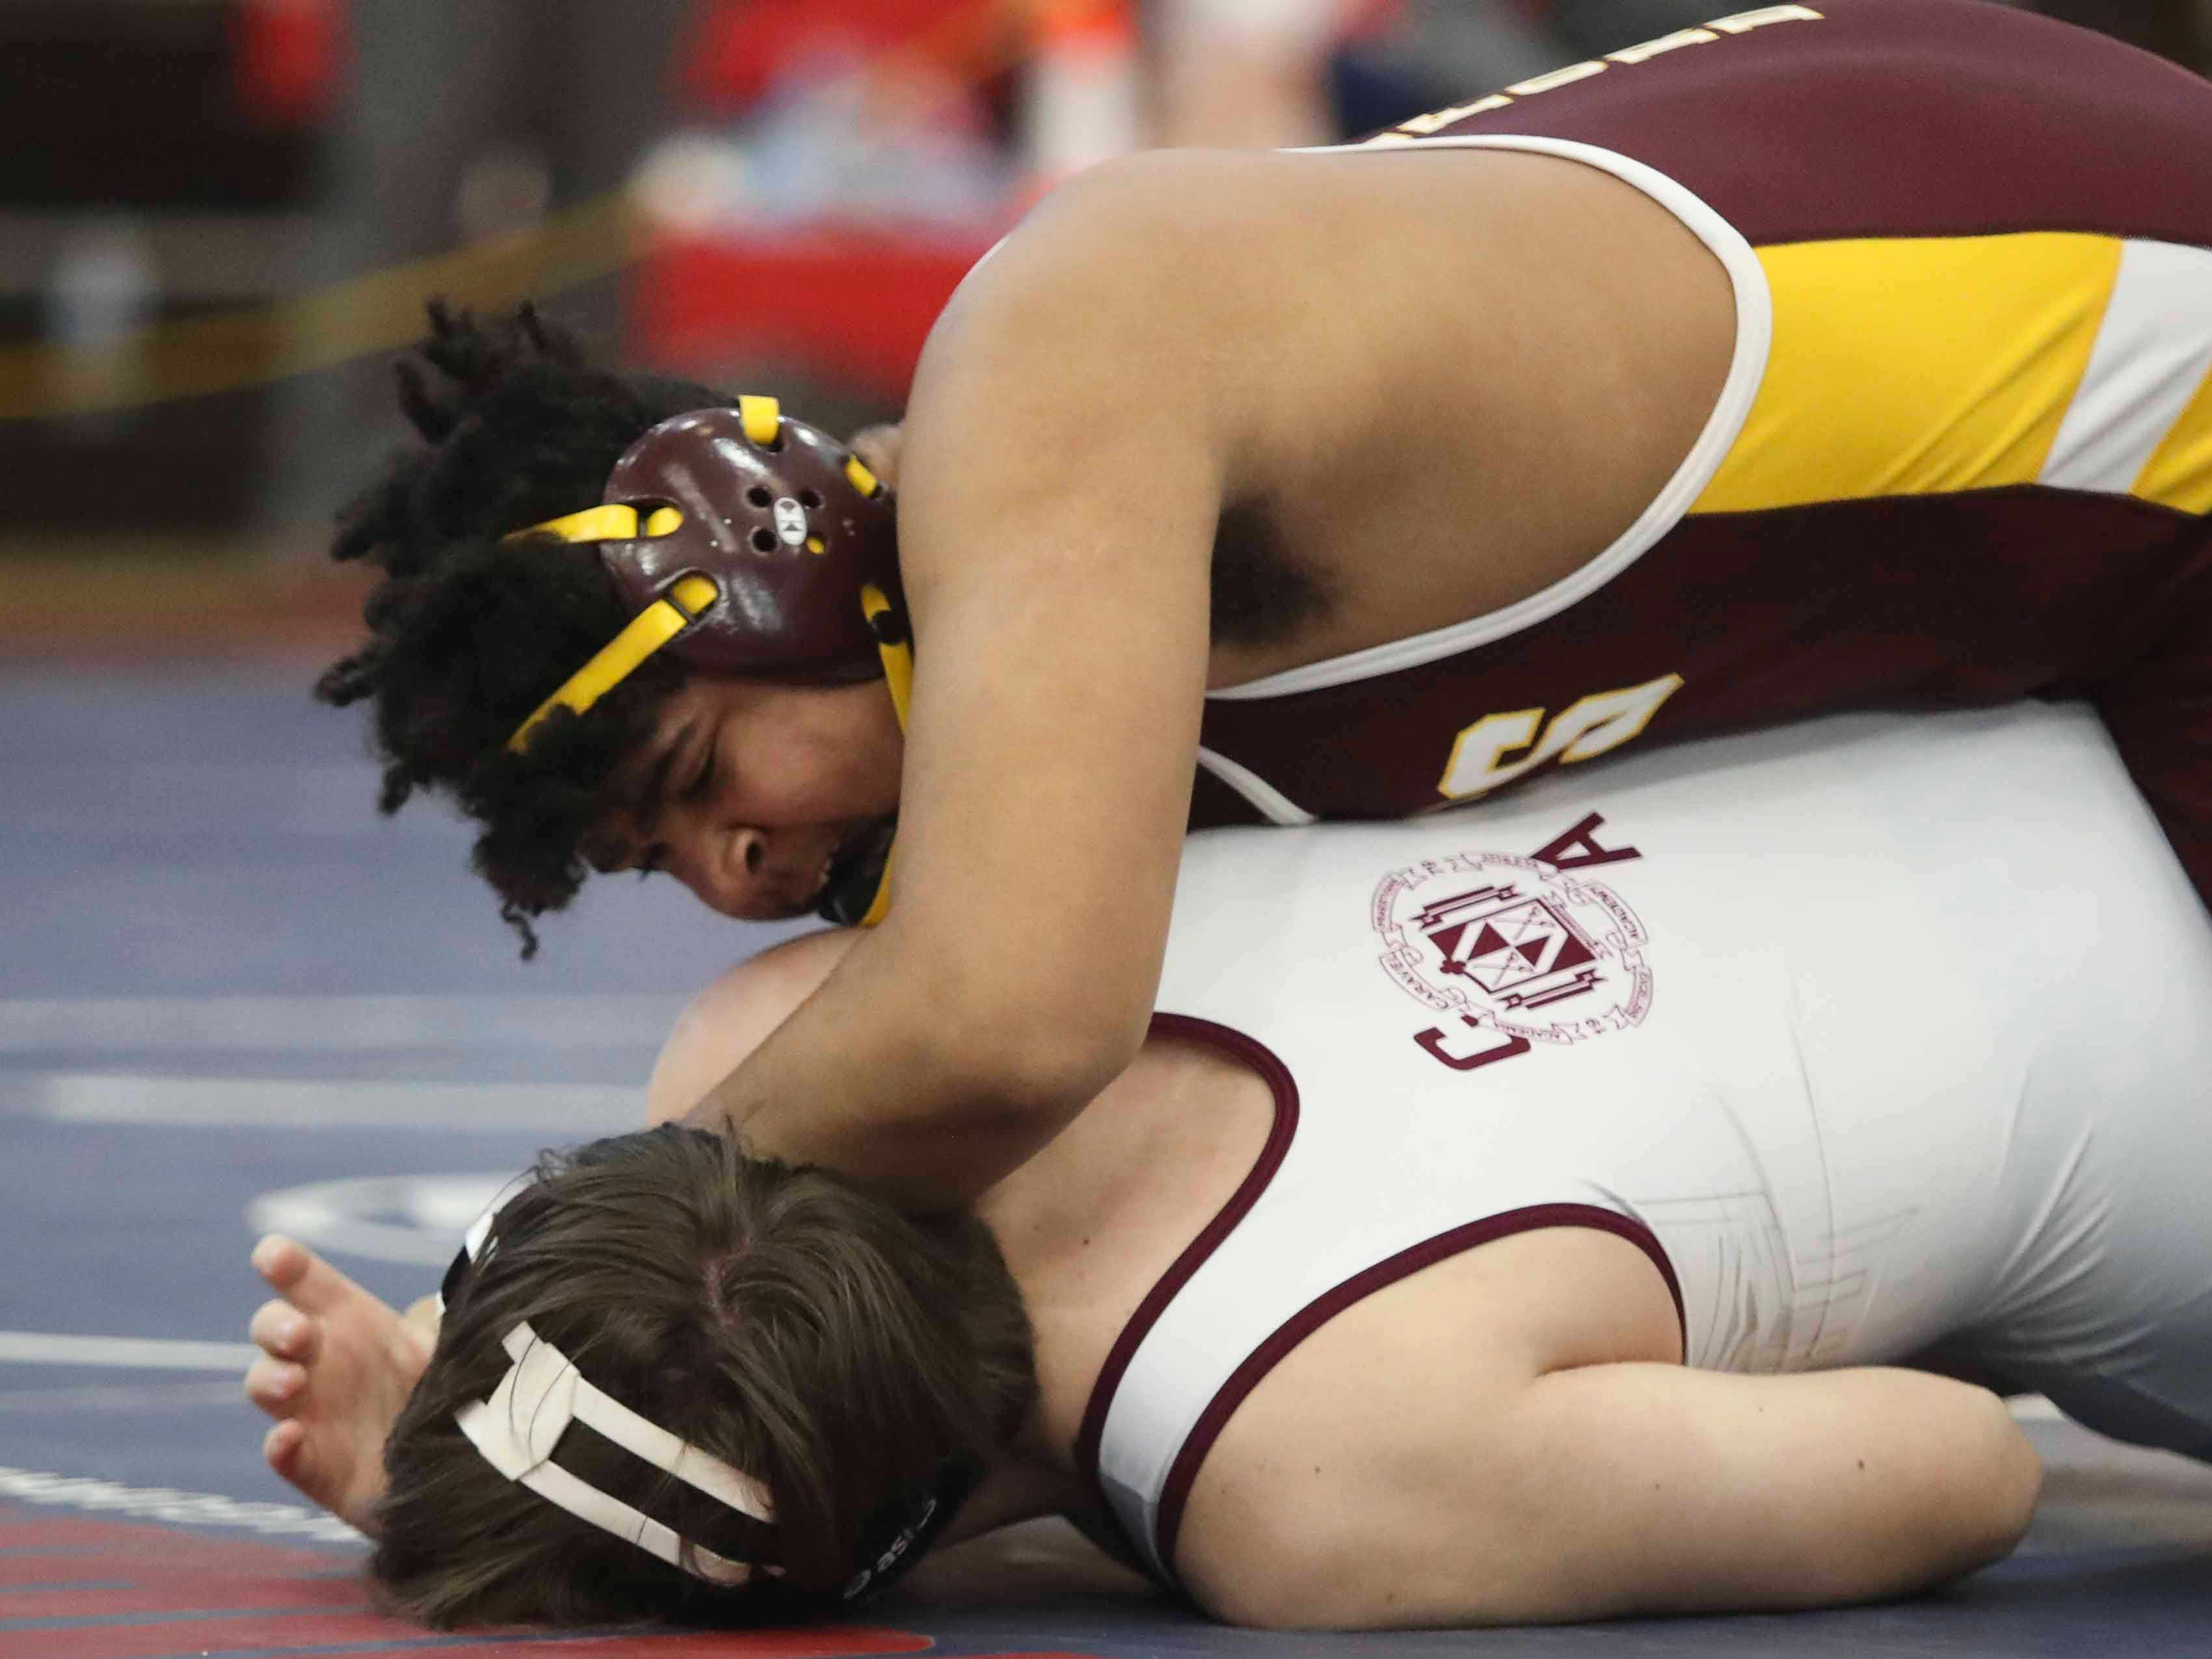 Milford's Evonte Bennett moves to a pin of Caravel's Anthony Ranauto at 285 pounds in the finals of the DIAA Division II dual meet championships Saturday at Smyrna High School.